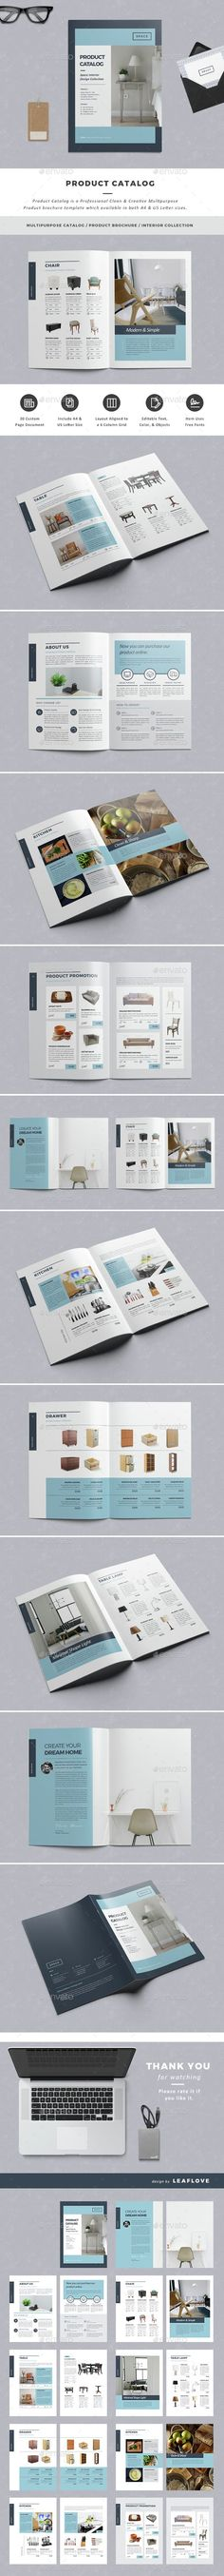 Product Catalog by LeafLove Product Catalog / Clean & Creative Multipurpose Product Brochure Template. This layout is suitable for any project purpose. Catalogue Design, Catalogue Layout, Web Design, Book Design, Layout Design, Print Design, Creative Design, Editorial Layout, Editorial Design